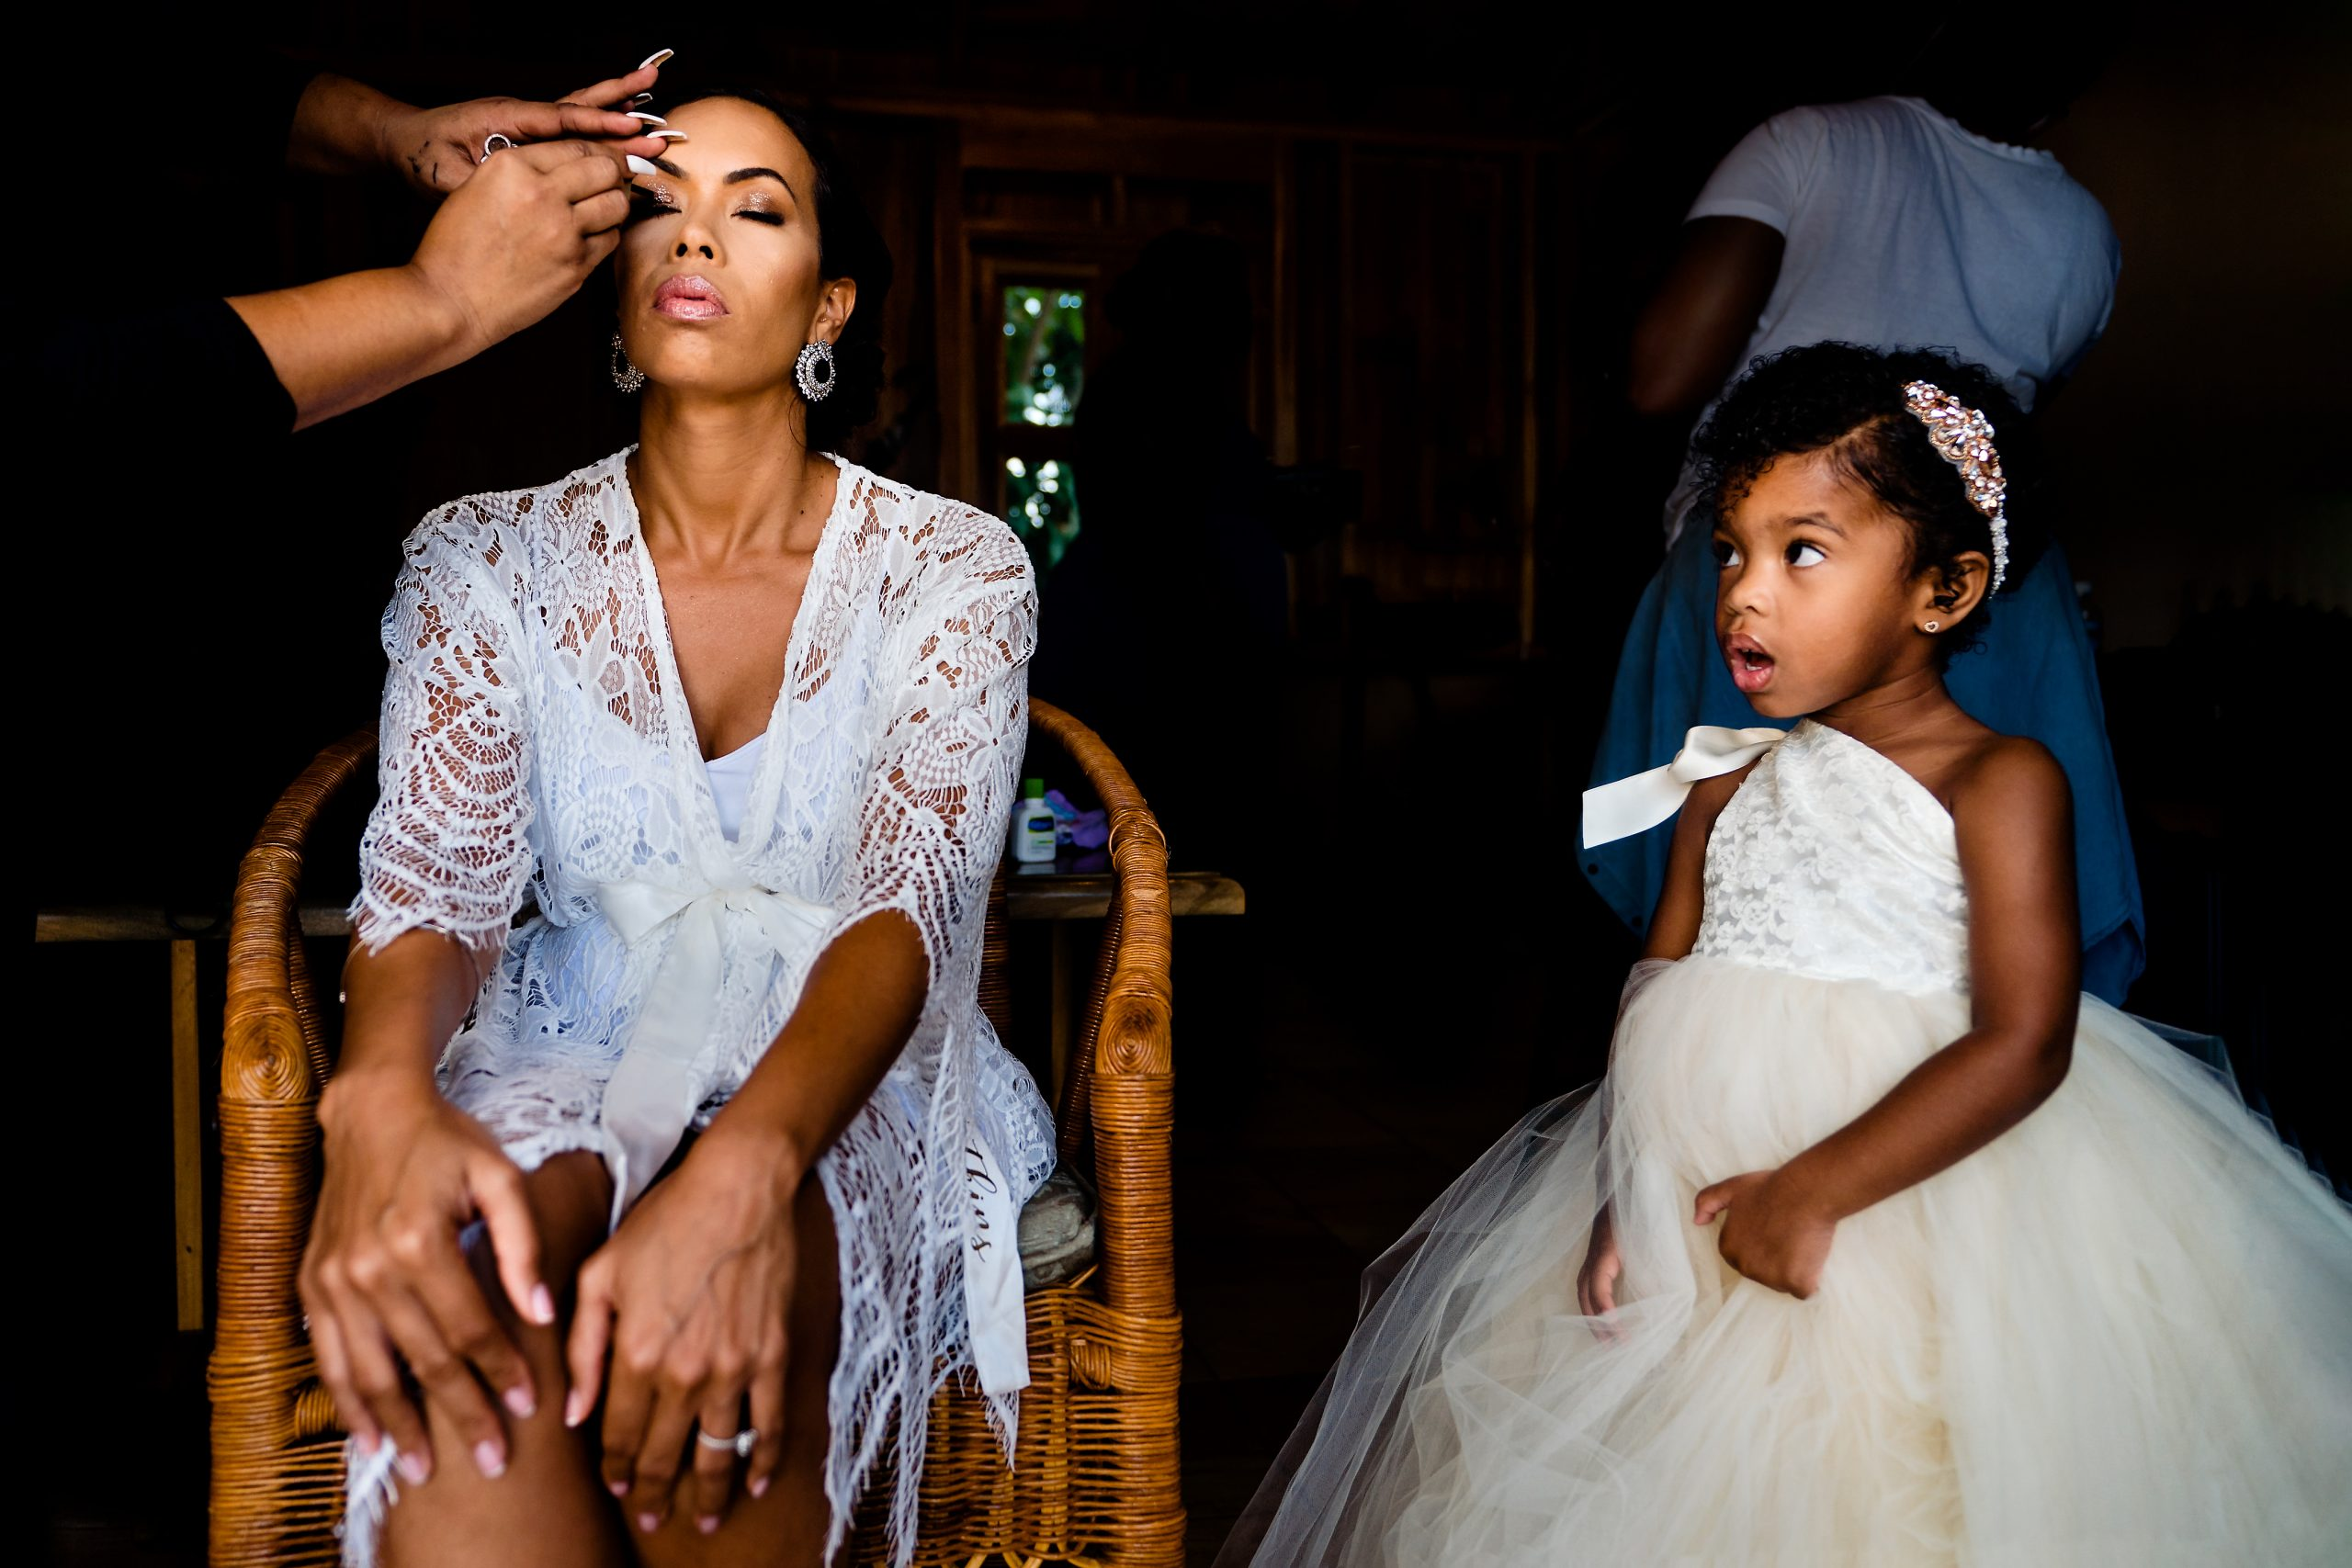 Dressing in white, a young girl watches wedding makeup get applied to the bride.